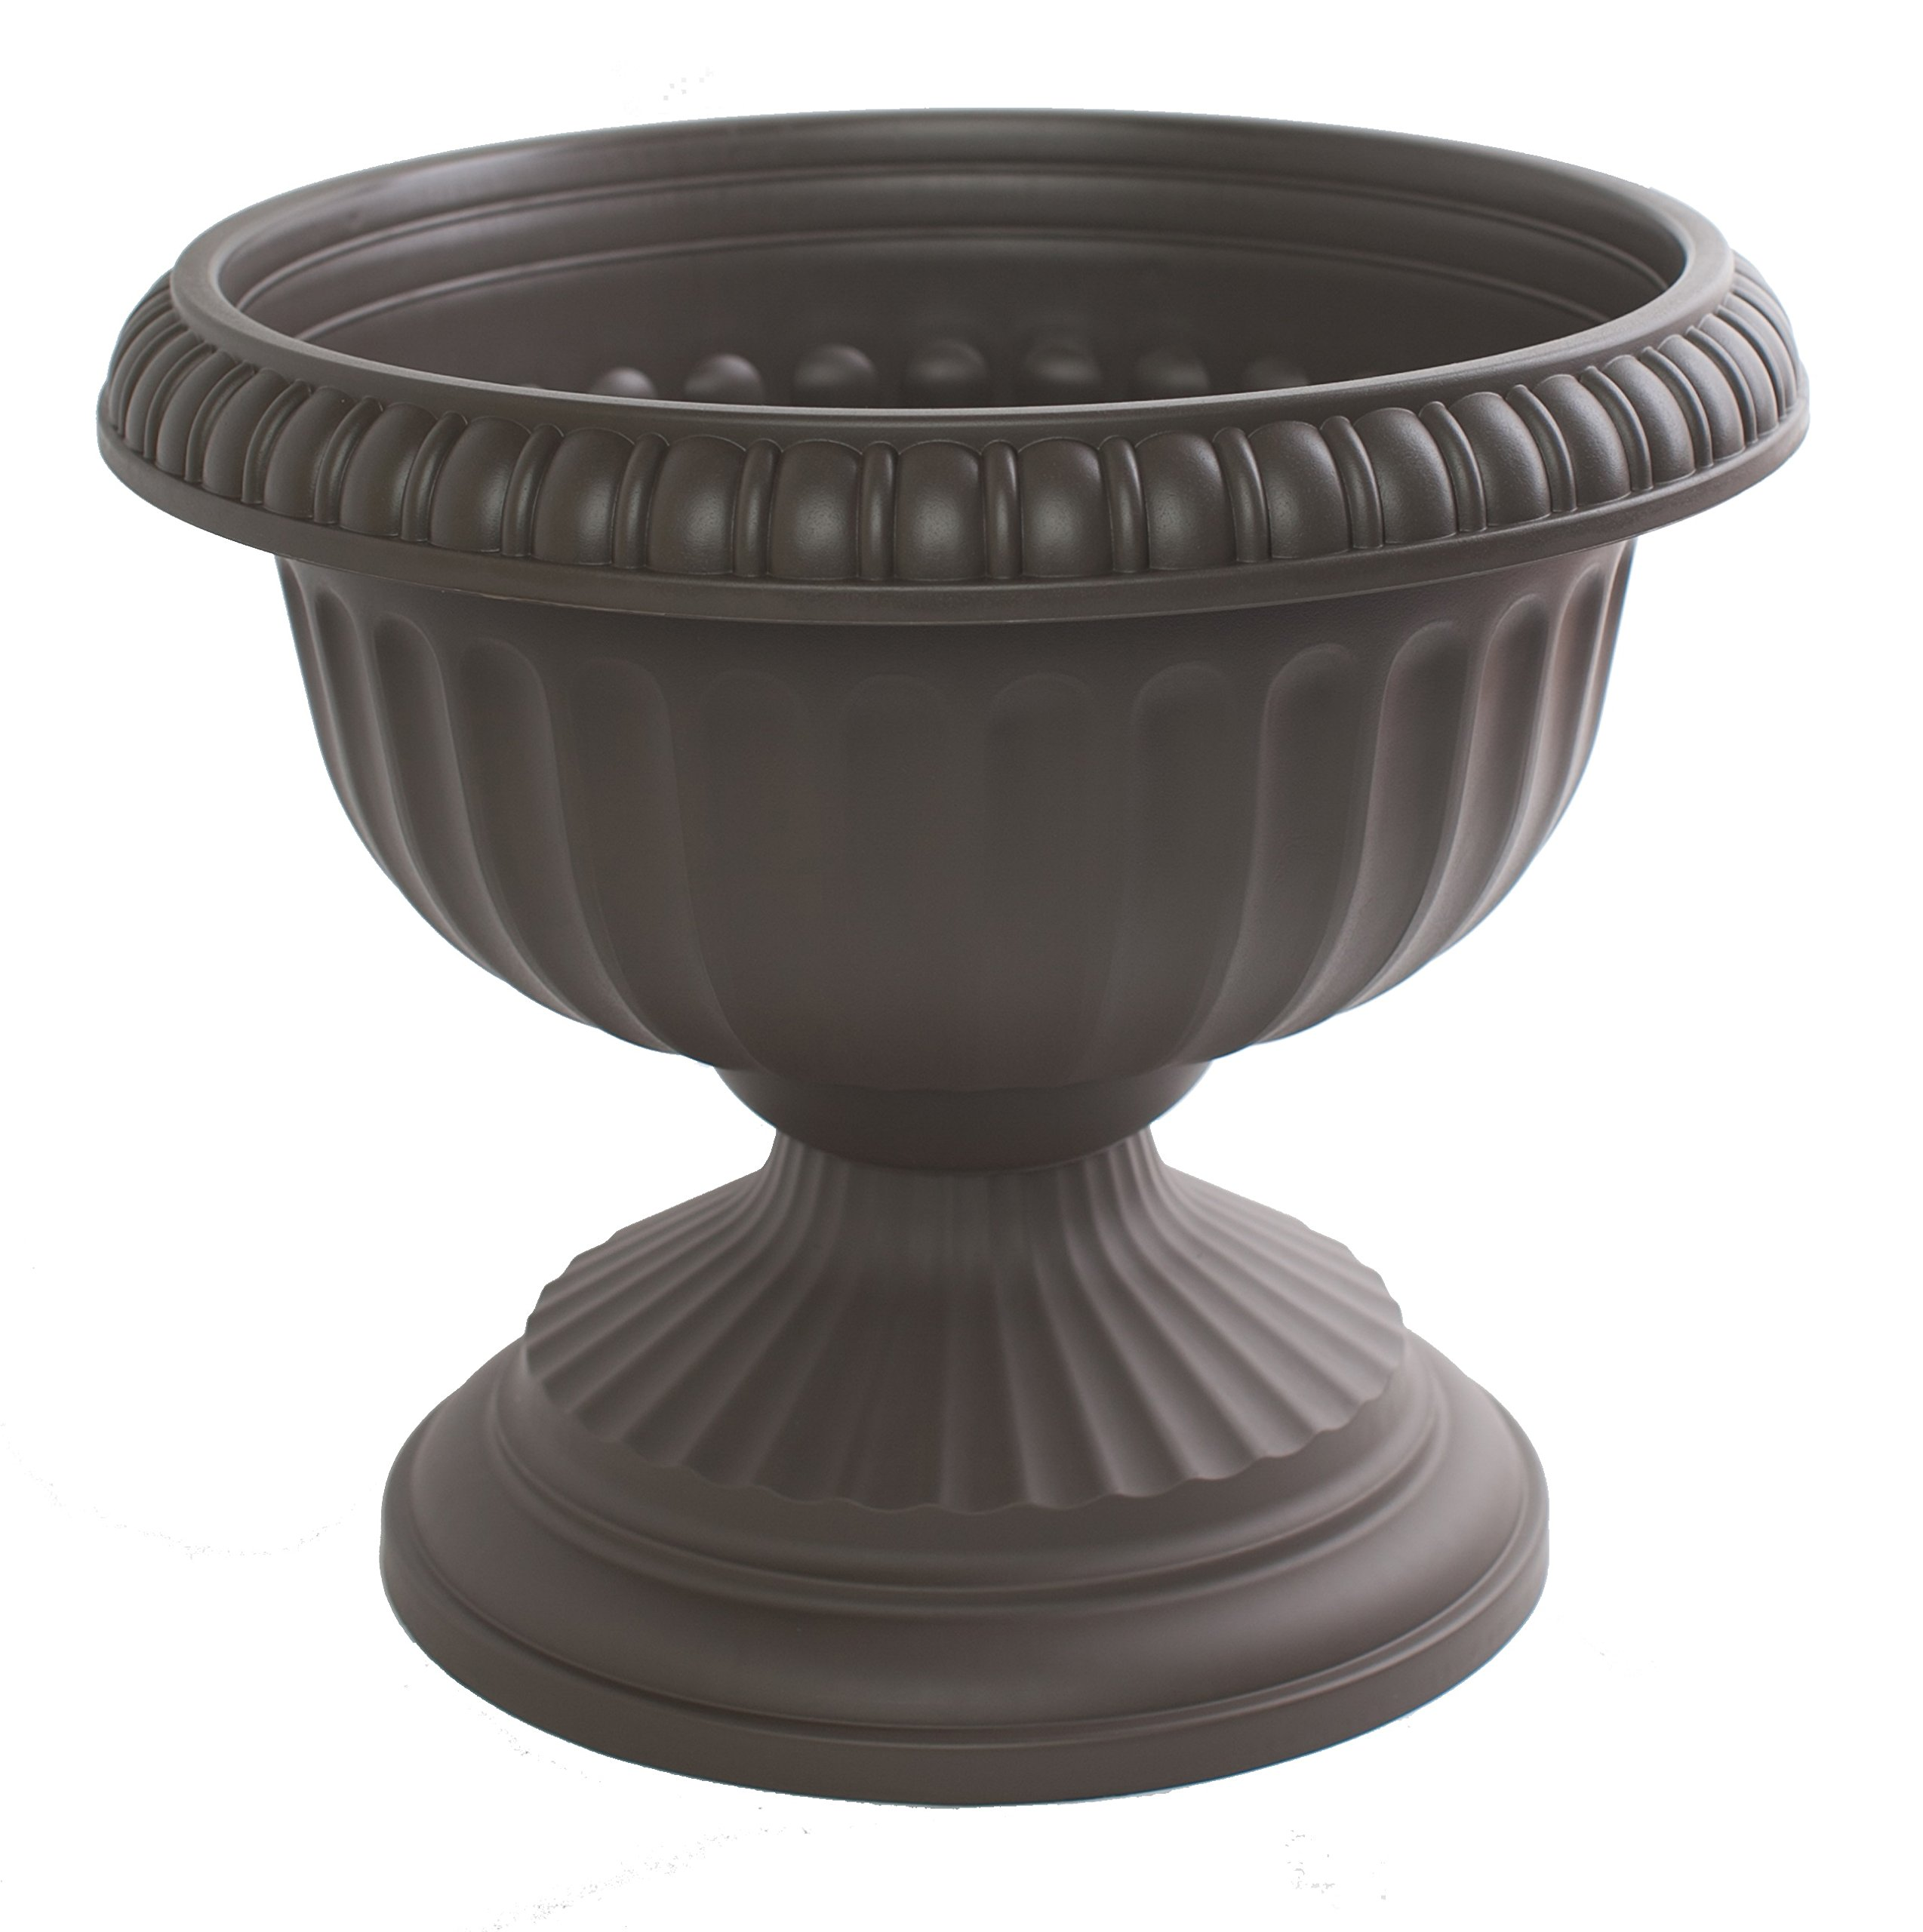 Bloem Grecian Urn Planter, 12'', Peppercorn by Bloem